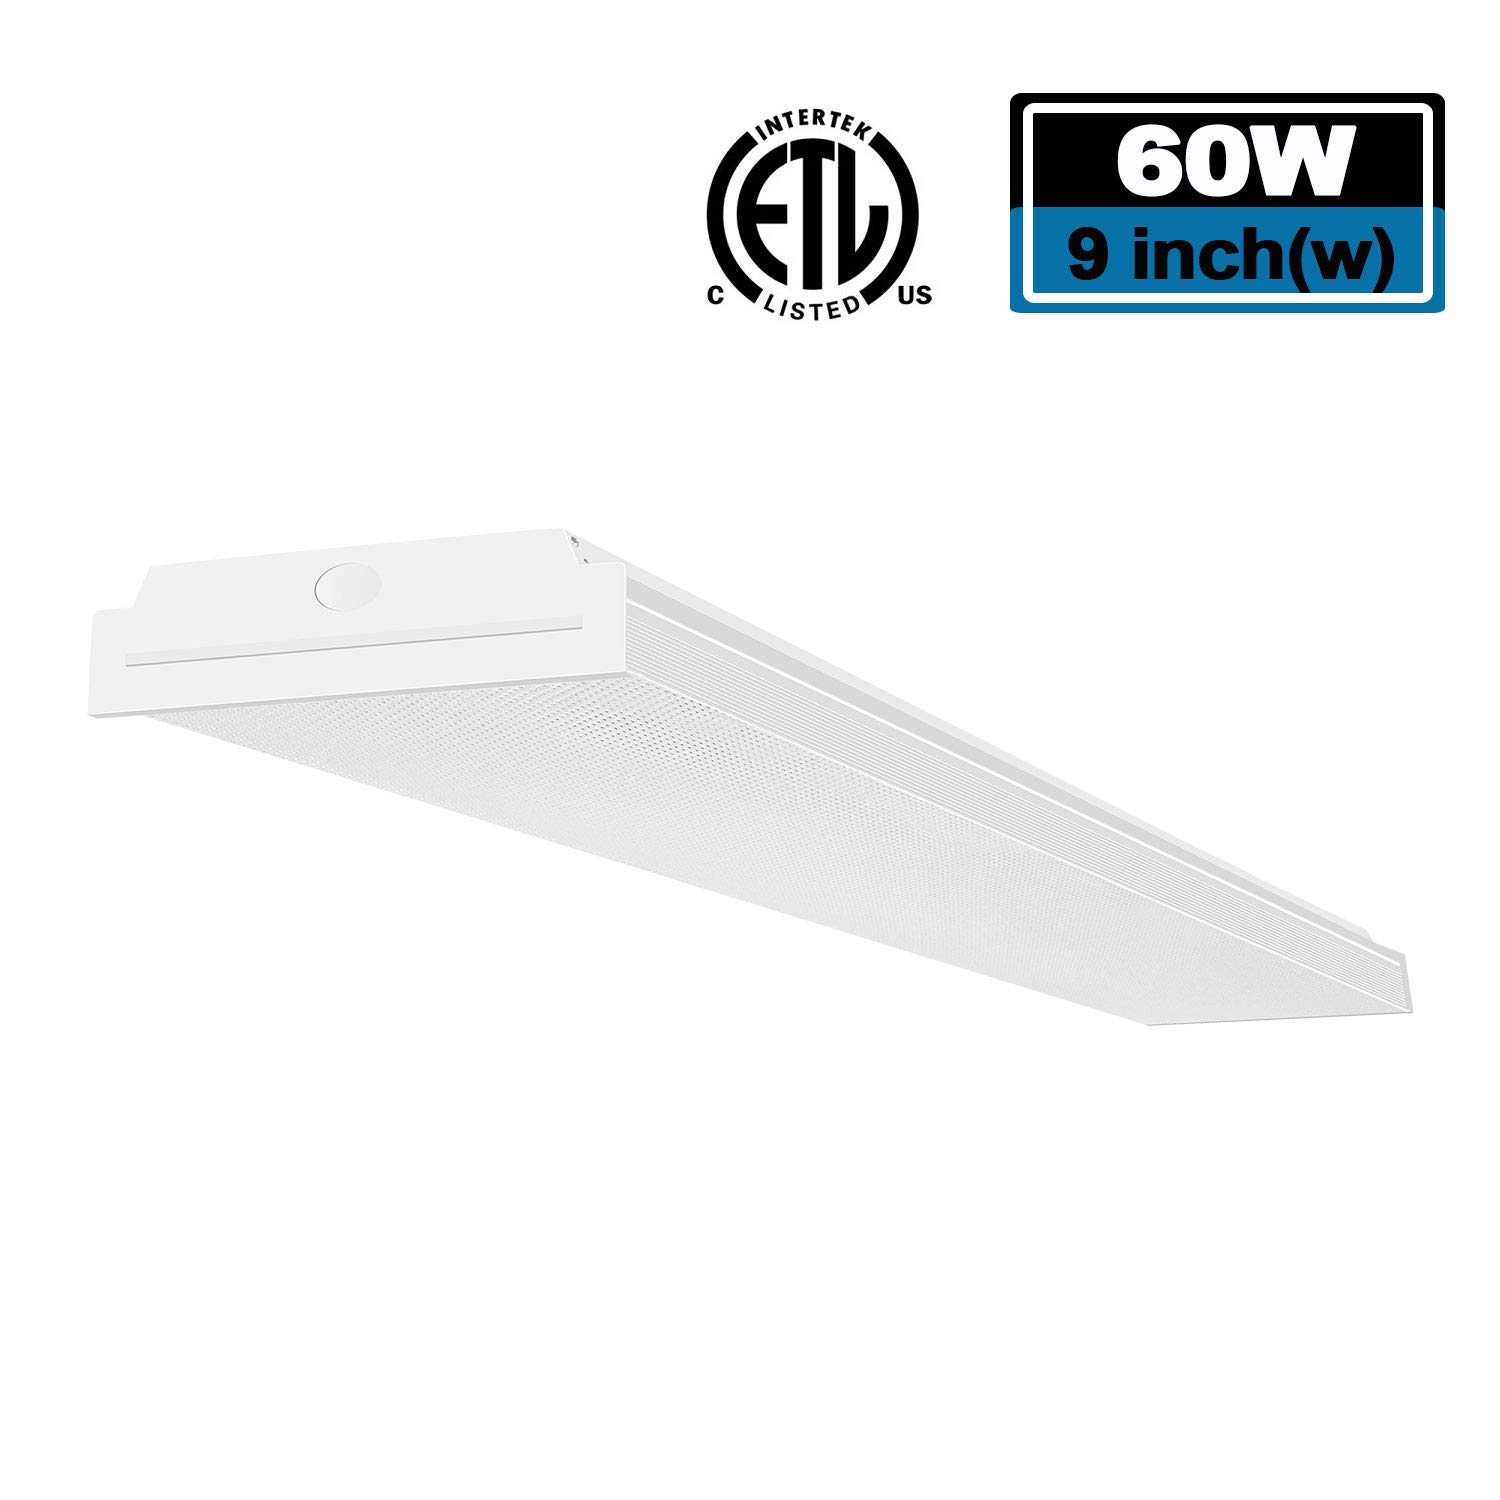 FaithSail 4FT LED Wraparound Light 60W LED Office Lights, 7200lm, 4000K Neutral White, 4 Foot Flush Mount LED Wrap Shop Puff Ceiling Lighting Fixture for Garage Workshop, Fluorescent Light Replacement